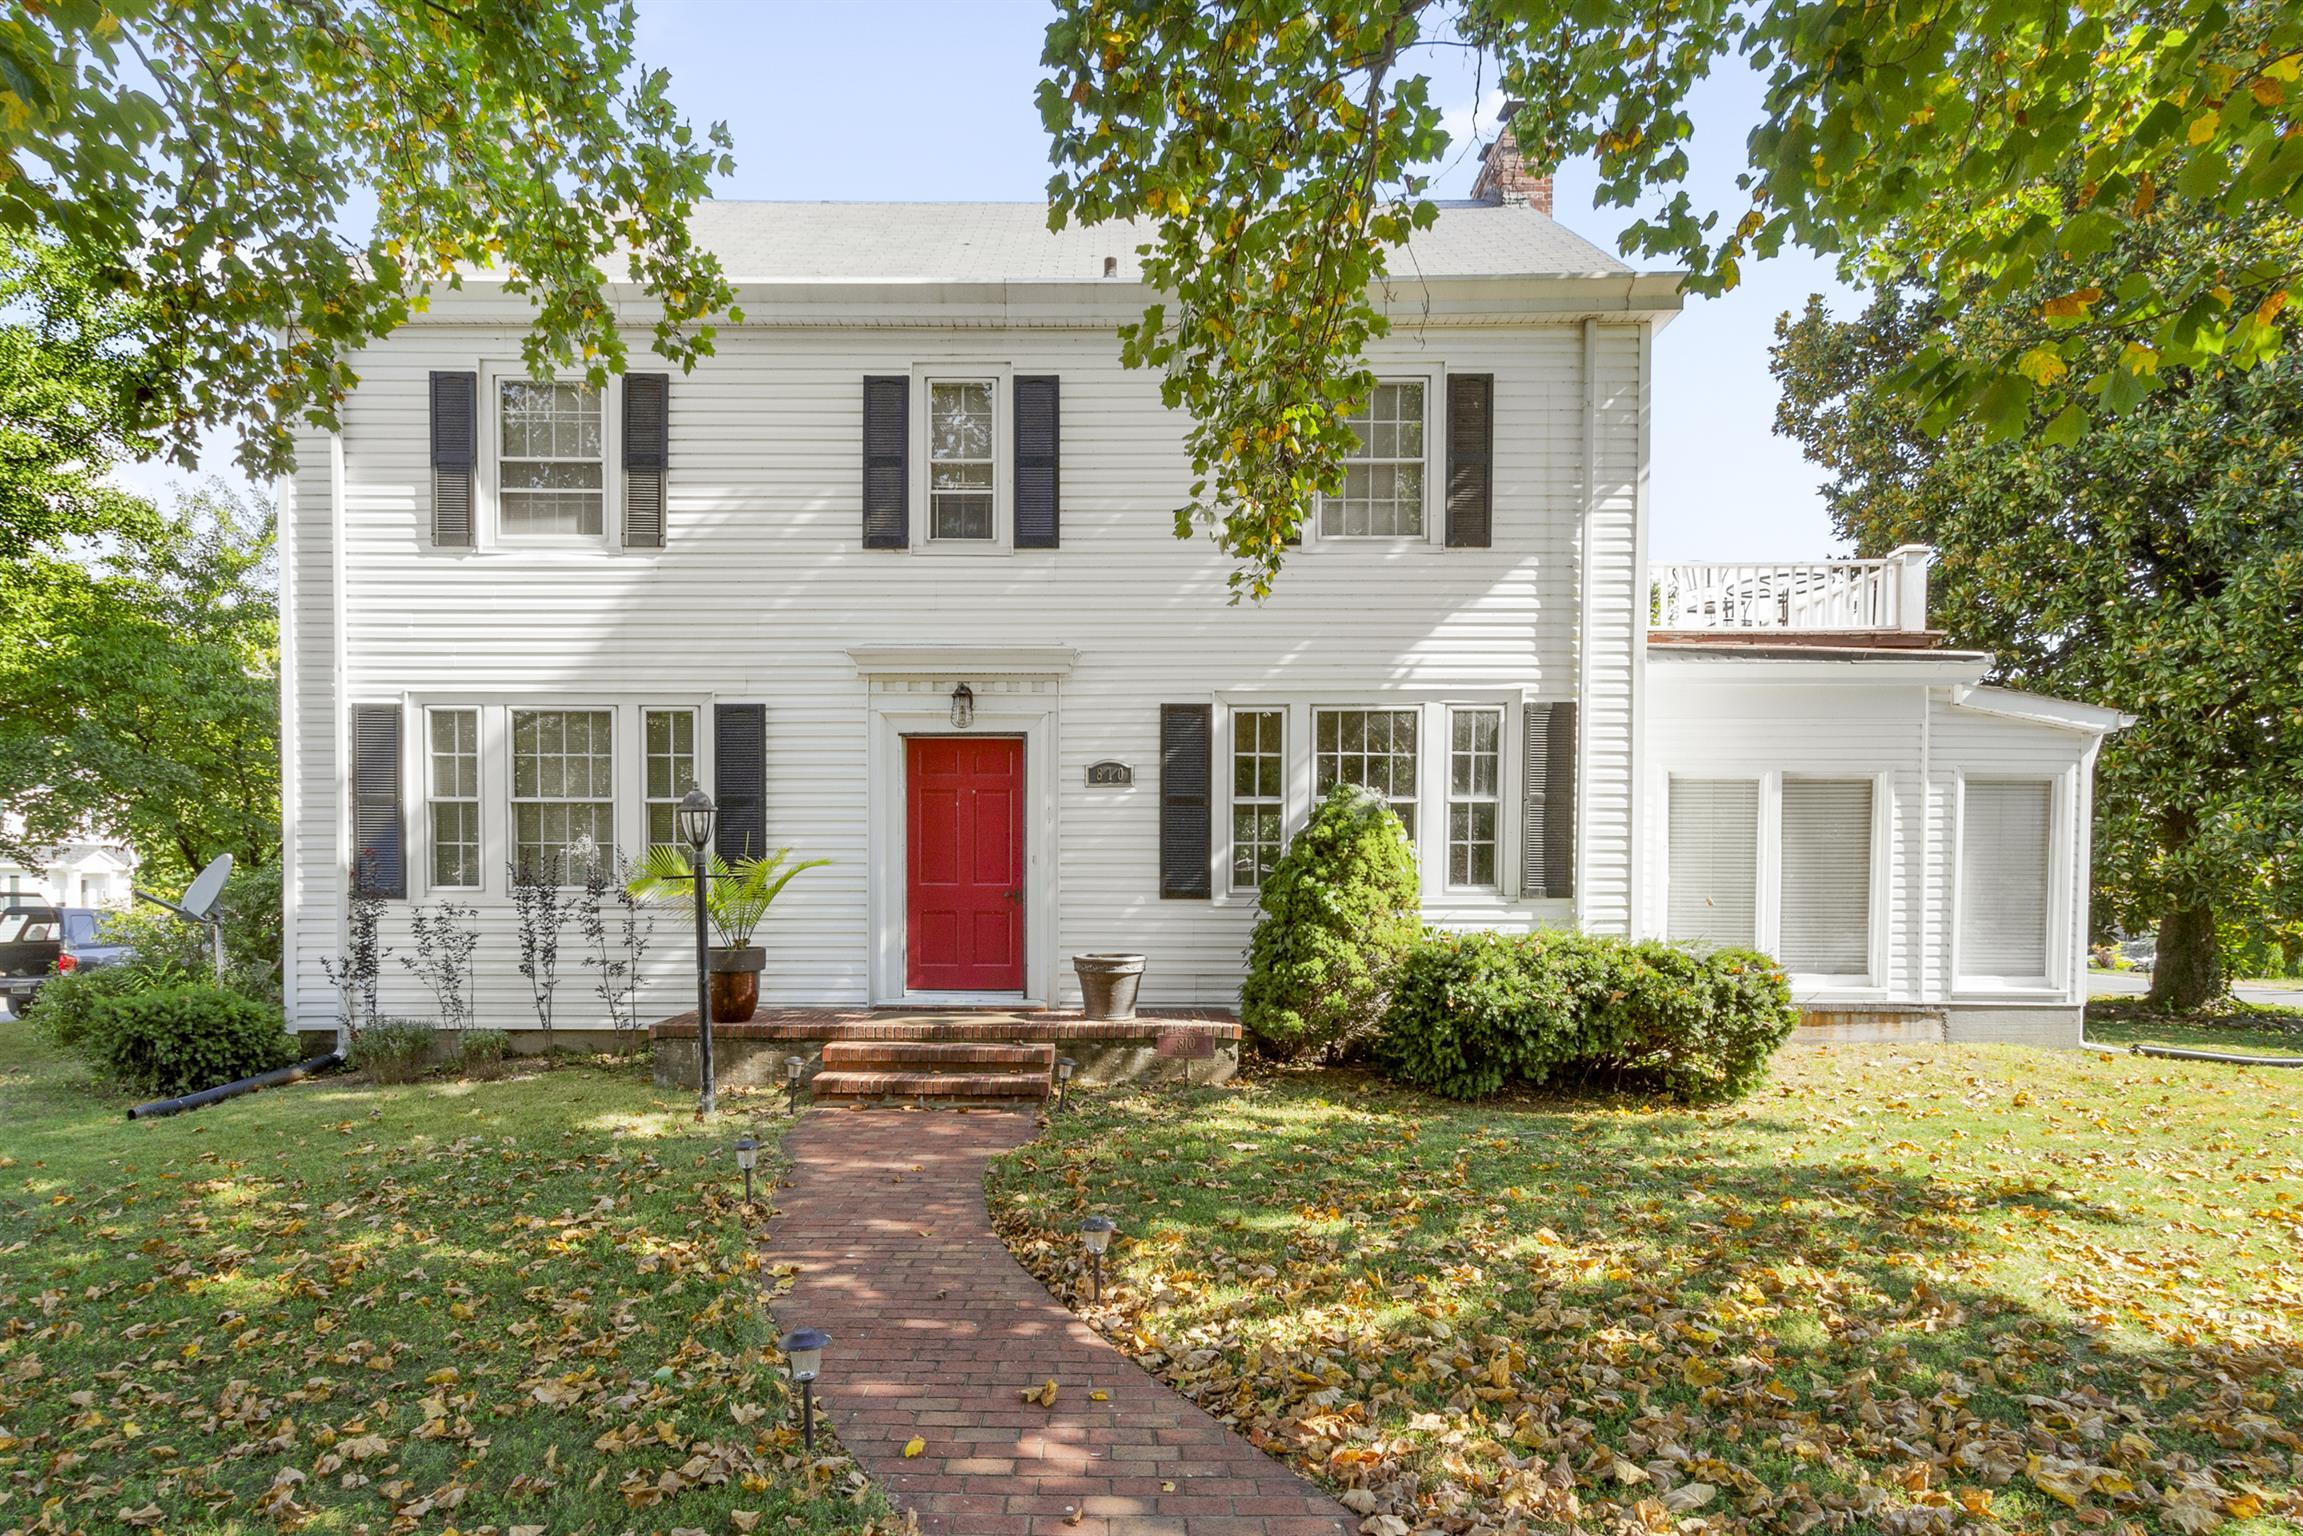 ***HISTORIC*** Just a few steps down to Old Hickory Lake, this historic Colonial home nestled on a corner lot is a showplace! Many of the original fixtures remain in this restored 1930-built 4 bedroom, 2.5 bath home. See for yourself!